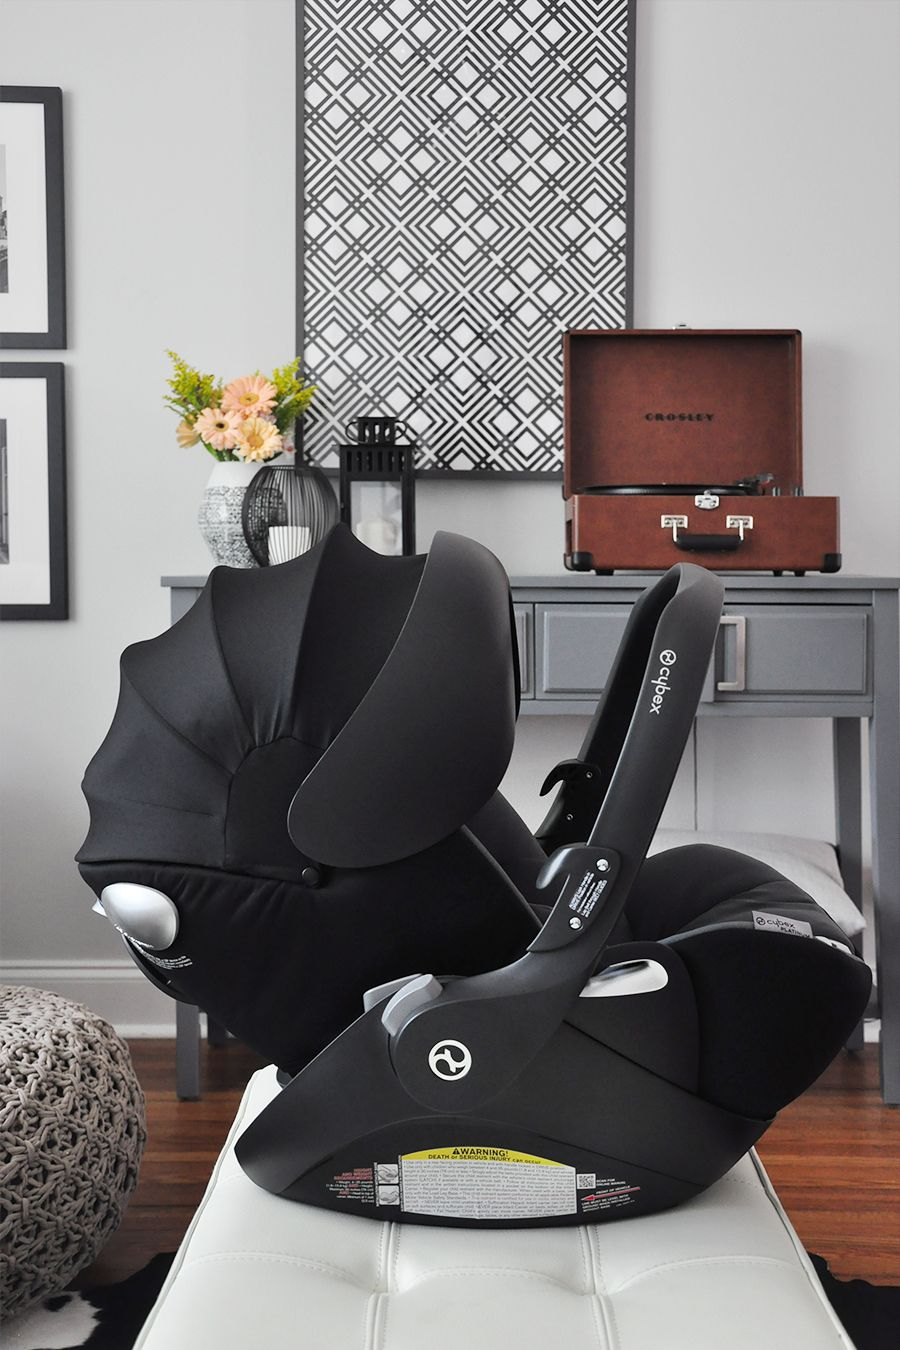 As A First Time Mama I Have Quite The List Of Must Haves When Choosing Baby Products Read My Review CYBEX Cloud Q Infant Car Seat